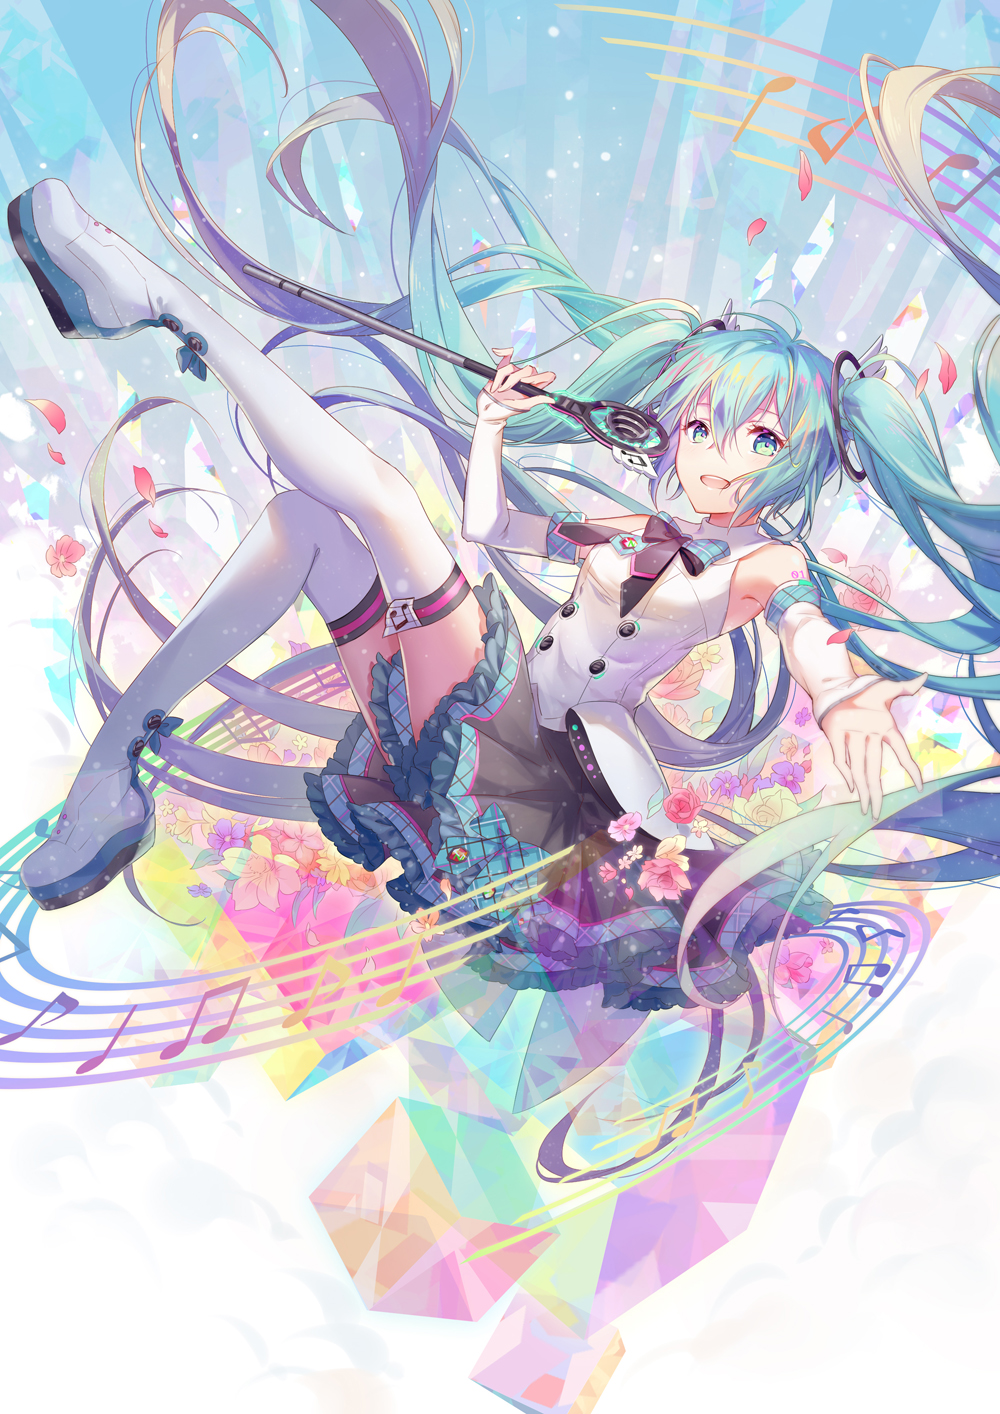 1girl aqua_eyes aqua_hair boots detached_sleeves flower hatsune_miku highres long_hair looking_at_viewer magical_mirai_(vocaloid) microphone minland4099 musical_note open_mouth outstretched_arm platform_footwear skirt solo staff_(music) thigh-highs thigh_boots twintails very_long_hair vocaloid white_legwear